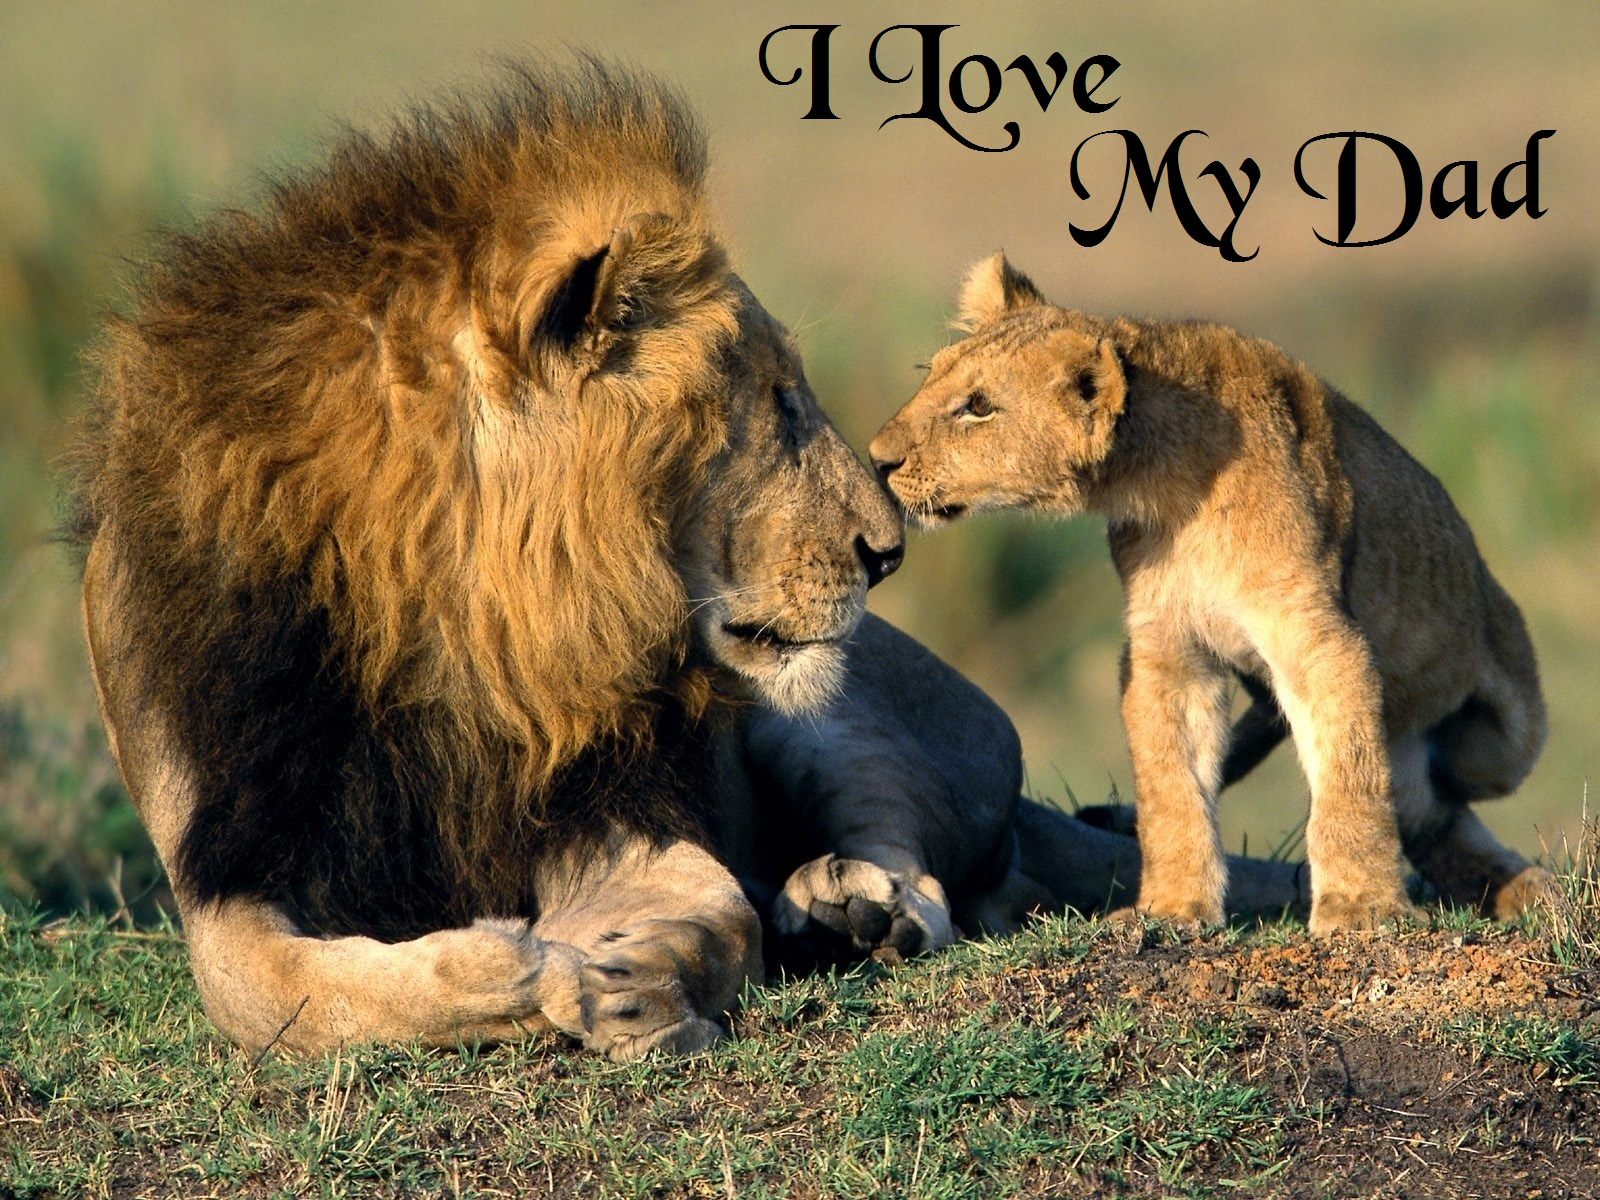 To download click on I Love My Dad Fathers Day Lion Wallpaper then 1600x1200